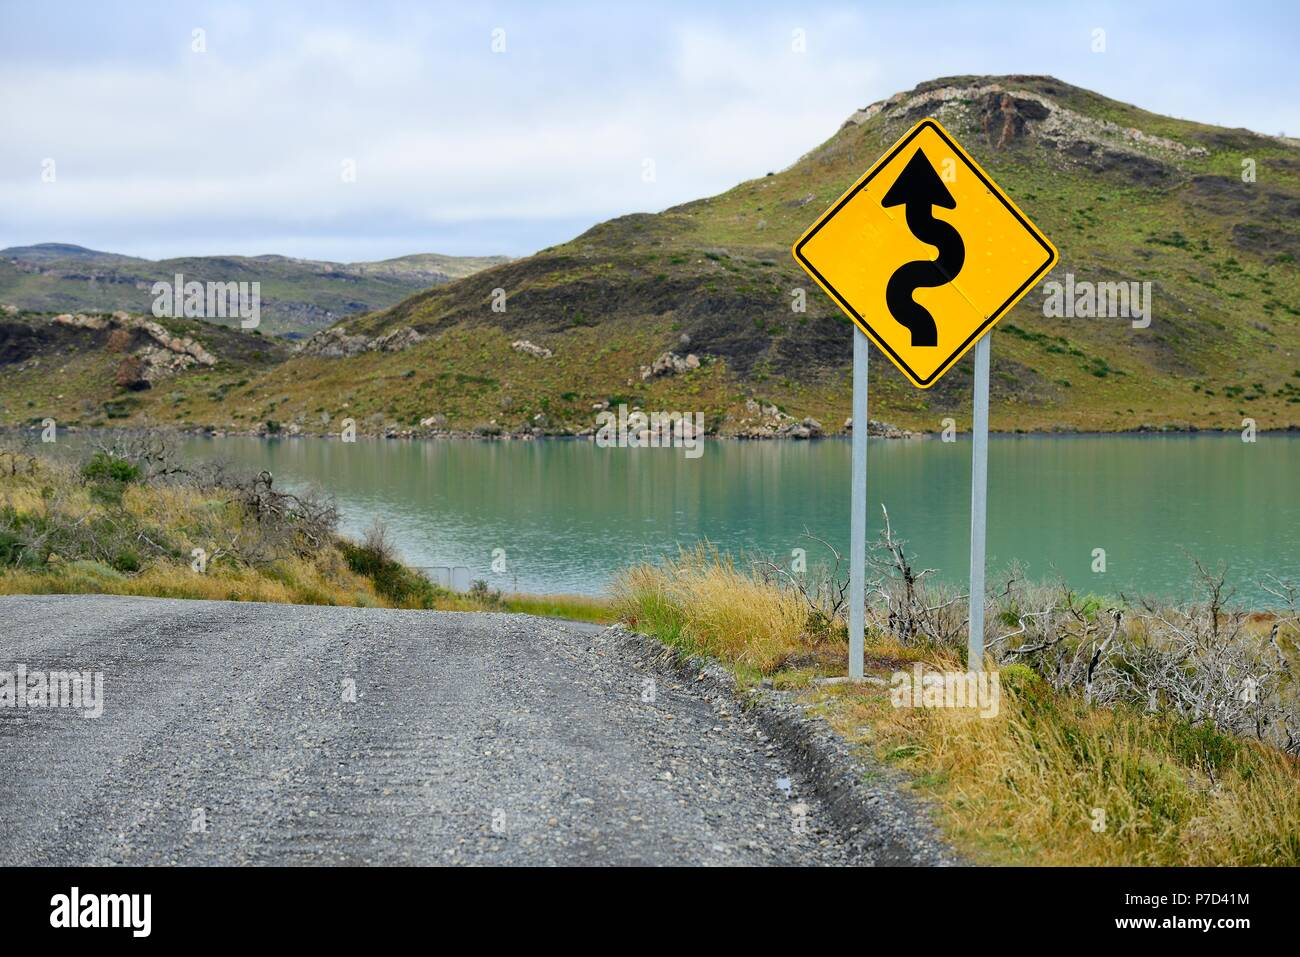 Sign Attention curves along the natural road, Laguna Amarga, Torres del Paine National Park, Última Esperanza Province, Chile - Stock Image